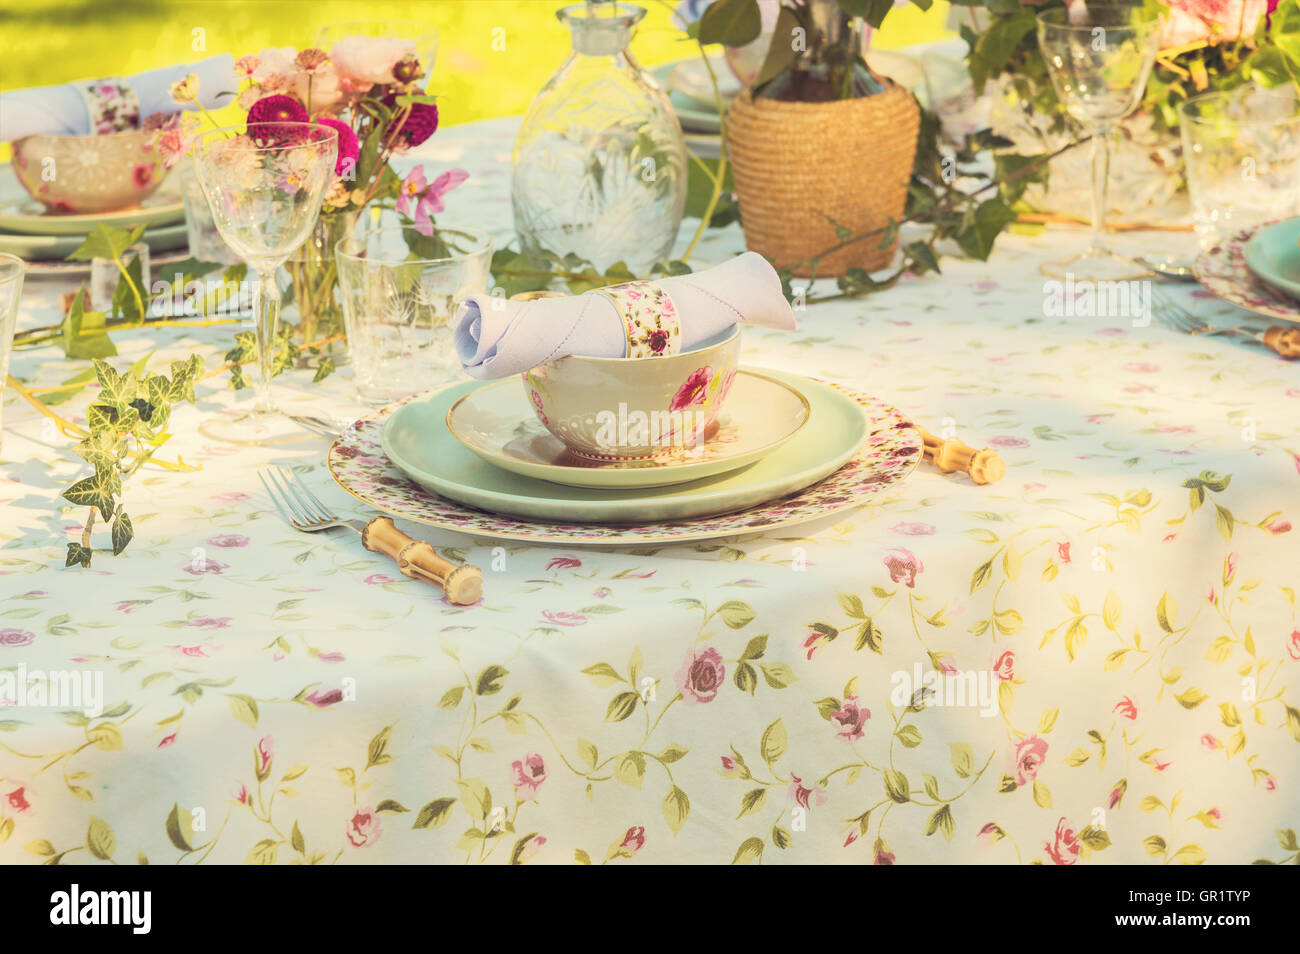 Image of a romantic table setting for a wedding or garden party. & Image of a romantic table setting for a wedding or garden party ...